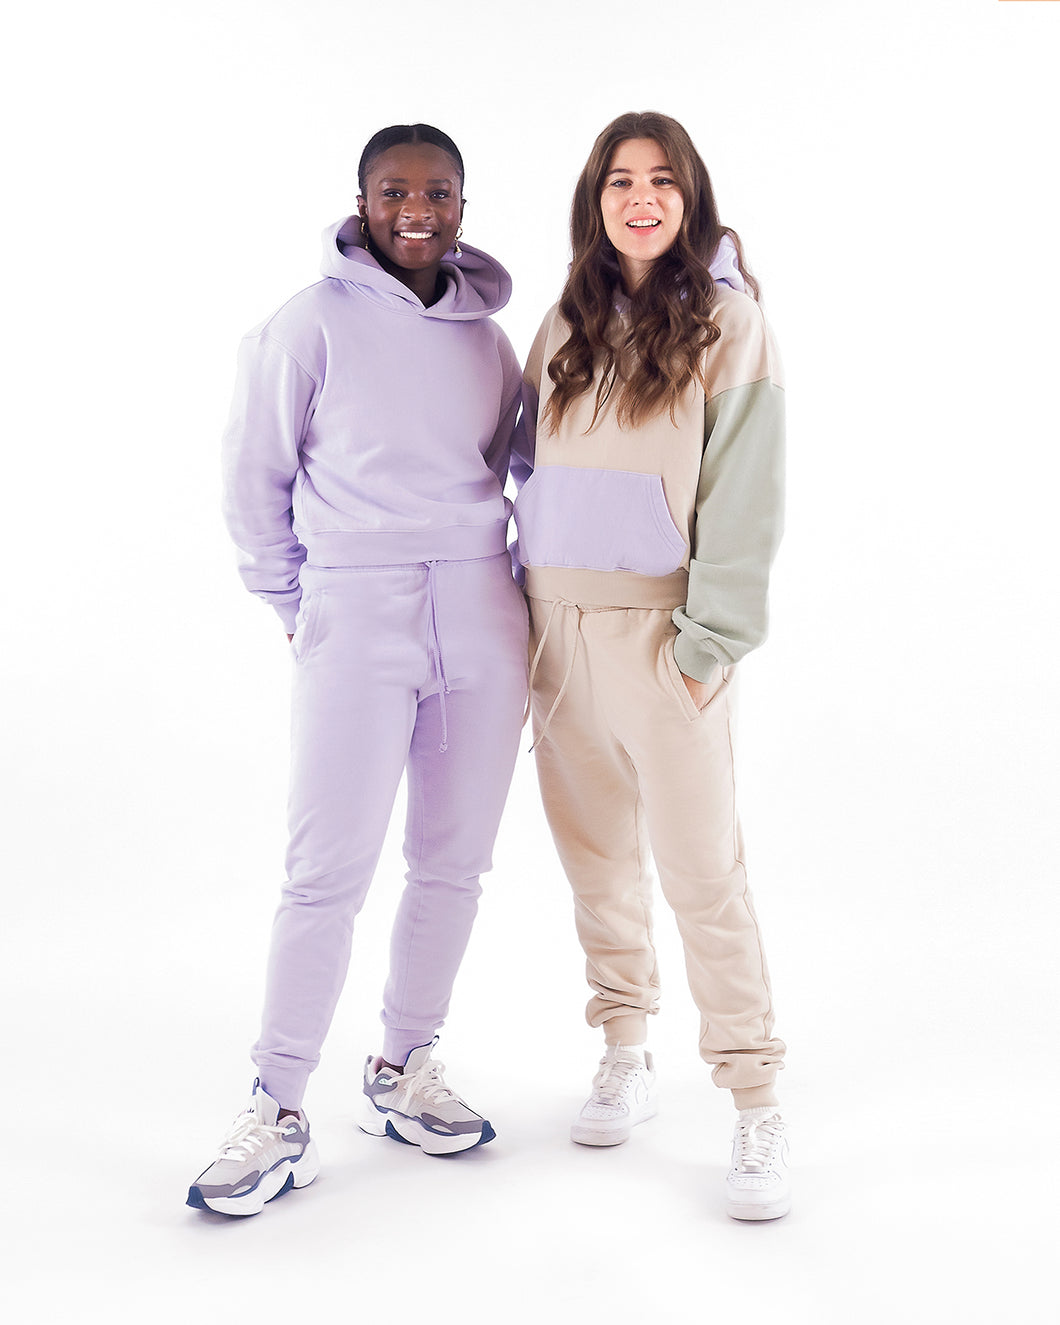 Pants Purple Woman Couple Jessica Weiss